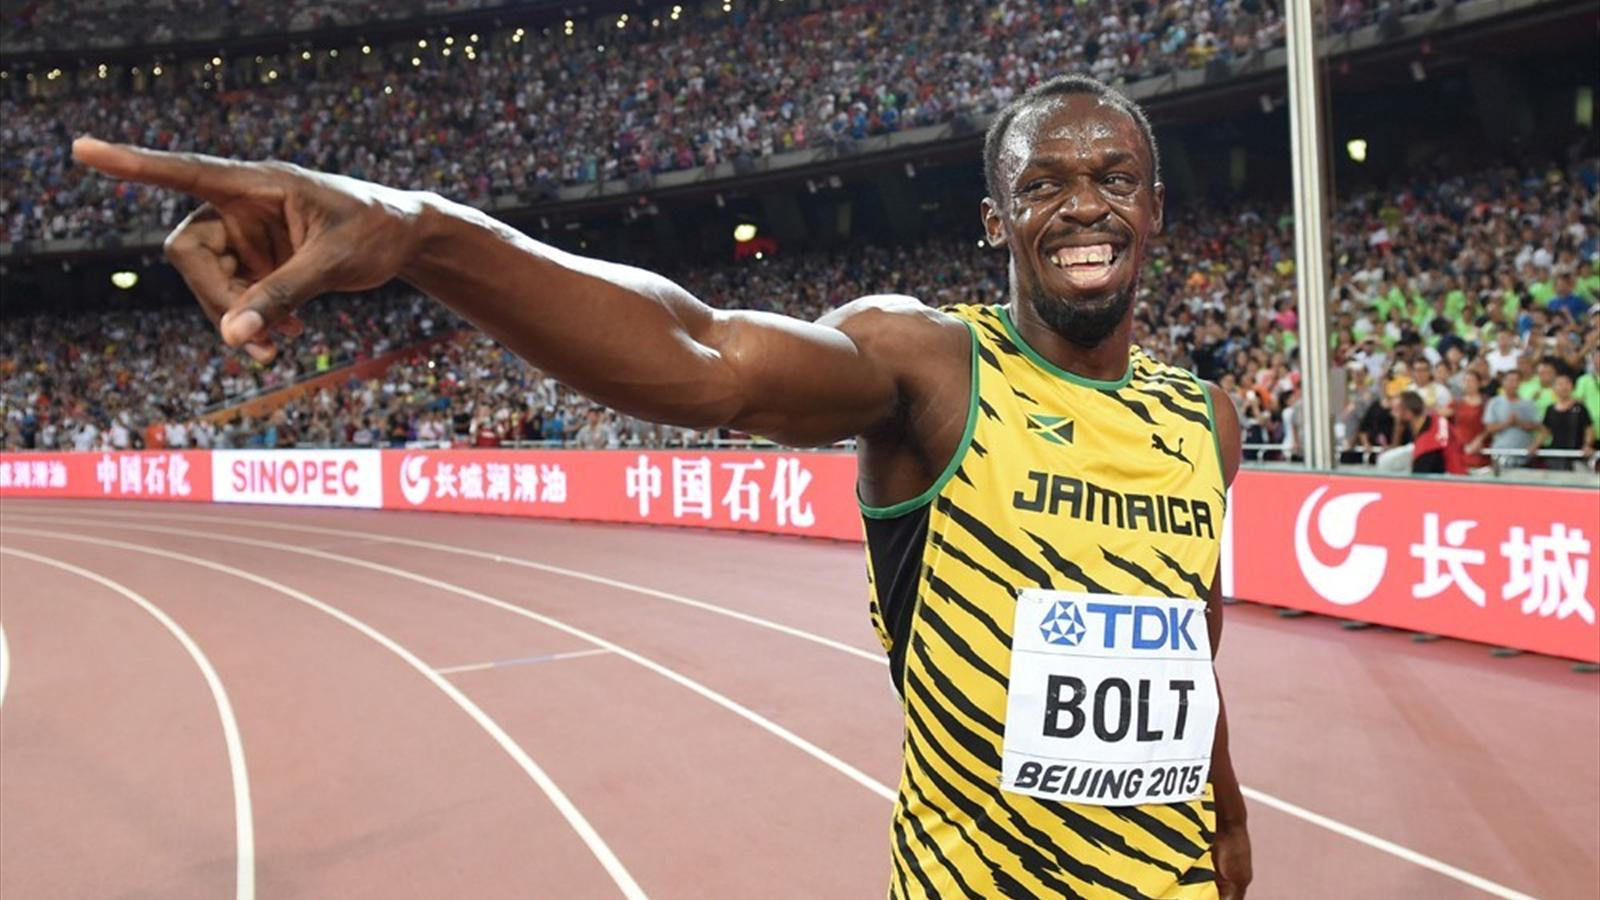 2016 Rio Olympics When Is The 100m Final What World Record Usain Bolt Odds Date